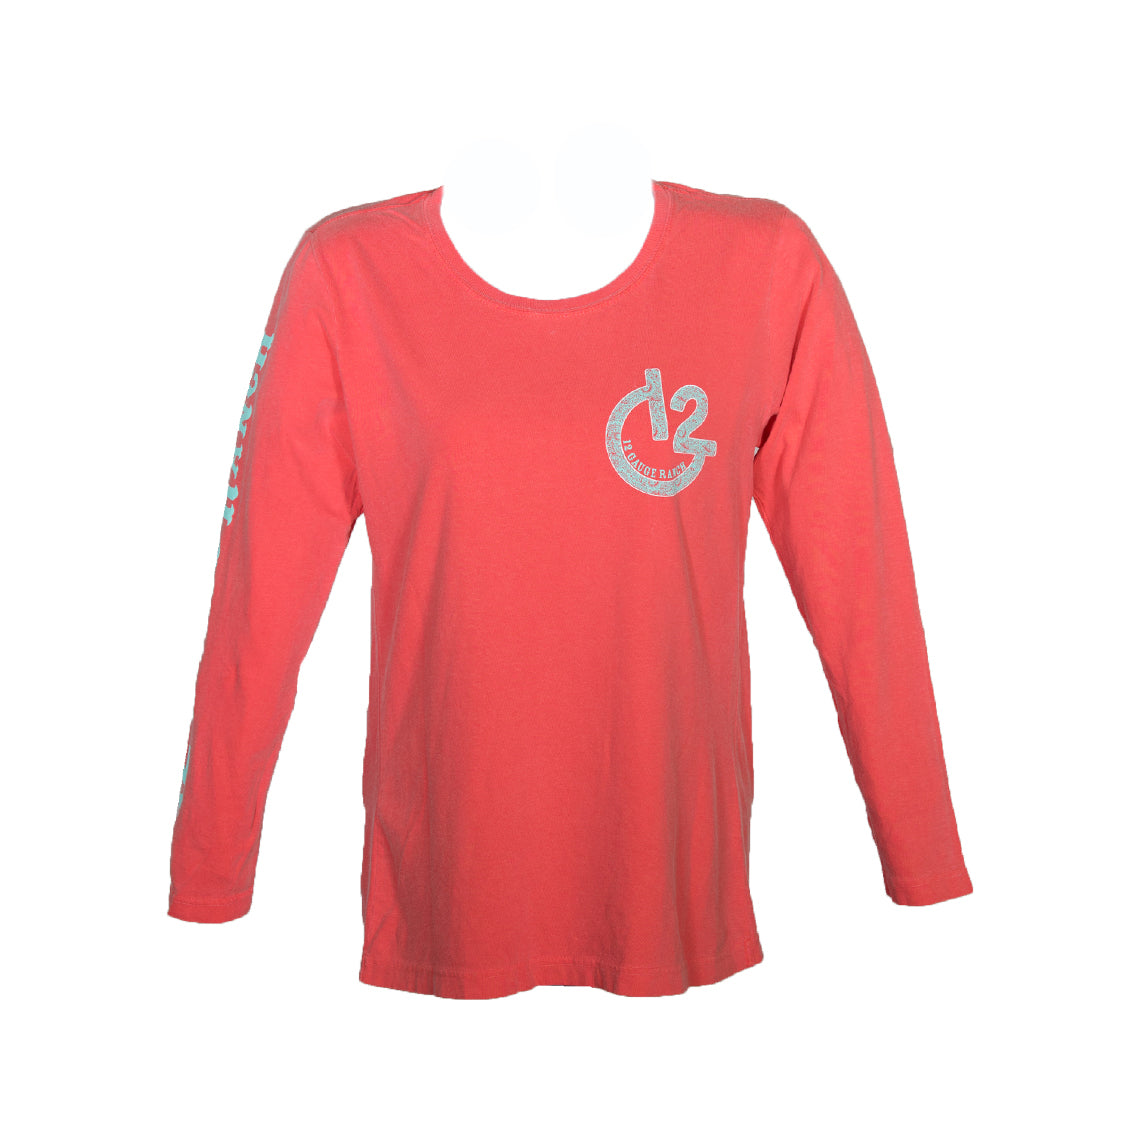 Paisley G12 Watermelon Long Sleeve Shirt, Apparel, 12 Gauge Ranch, 12 Gauge Ranch Ranch  12 Gauge Ranch